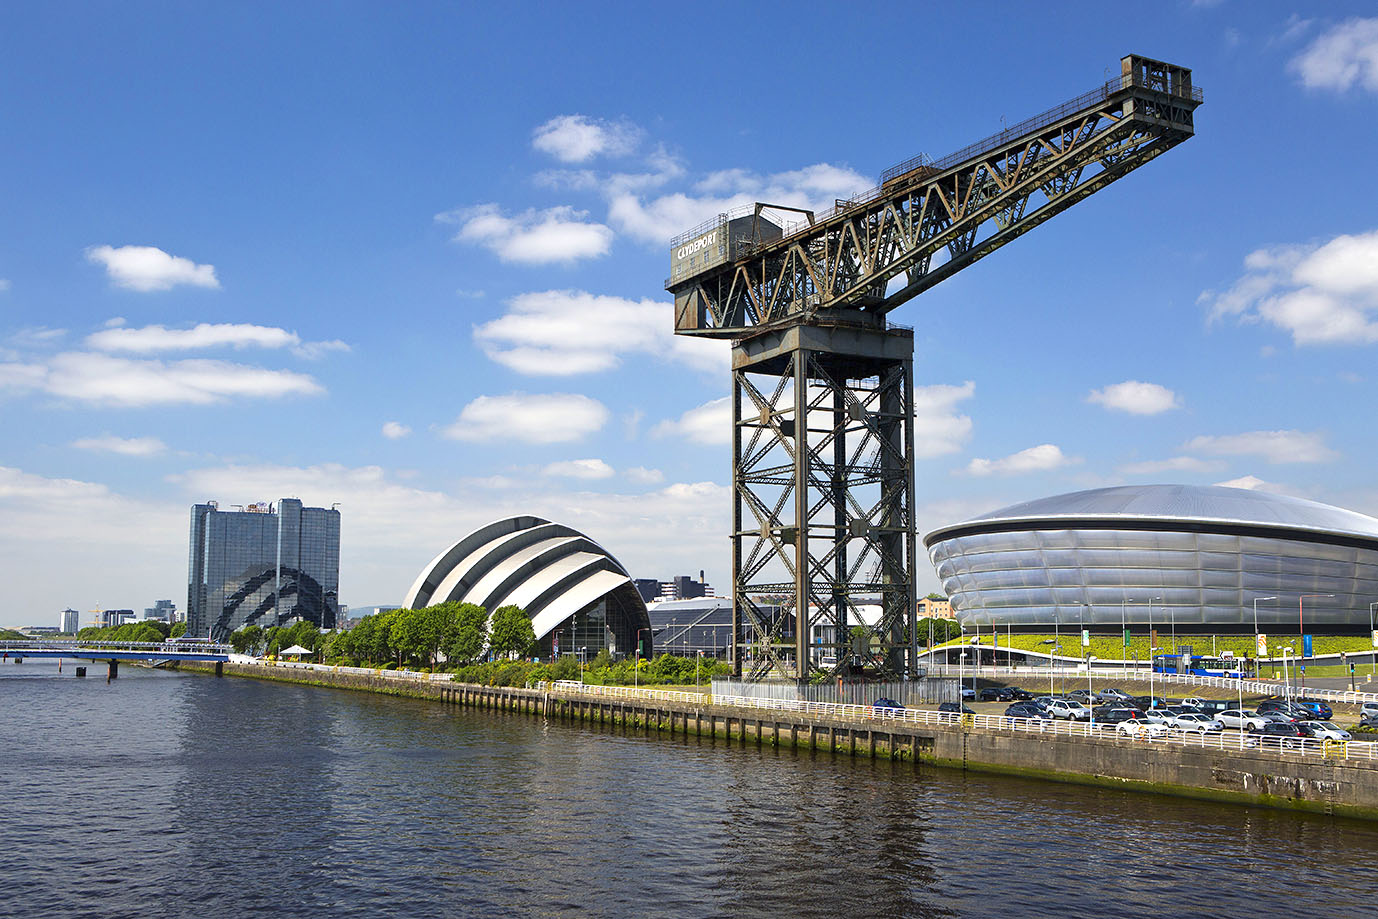 NEXT STOP GLASGOW: Take a video tour of Glasgow's top attractions